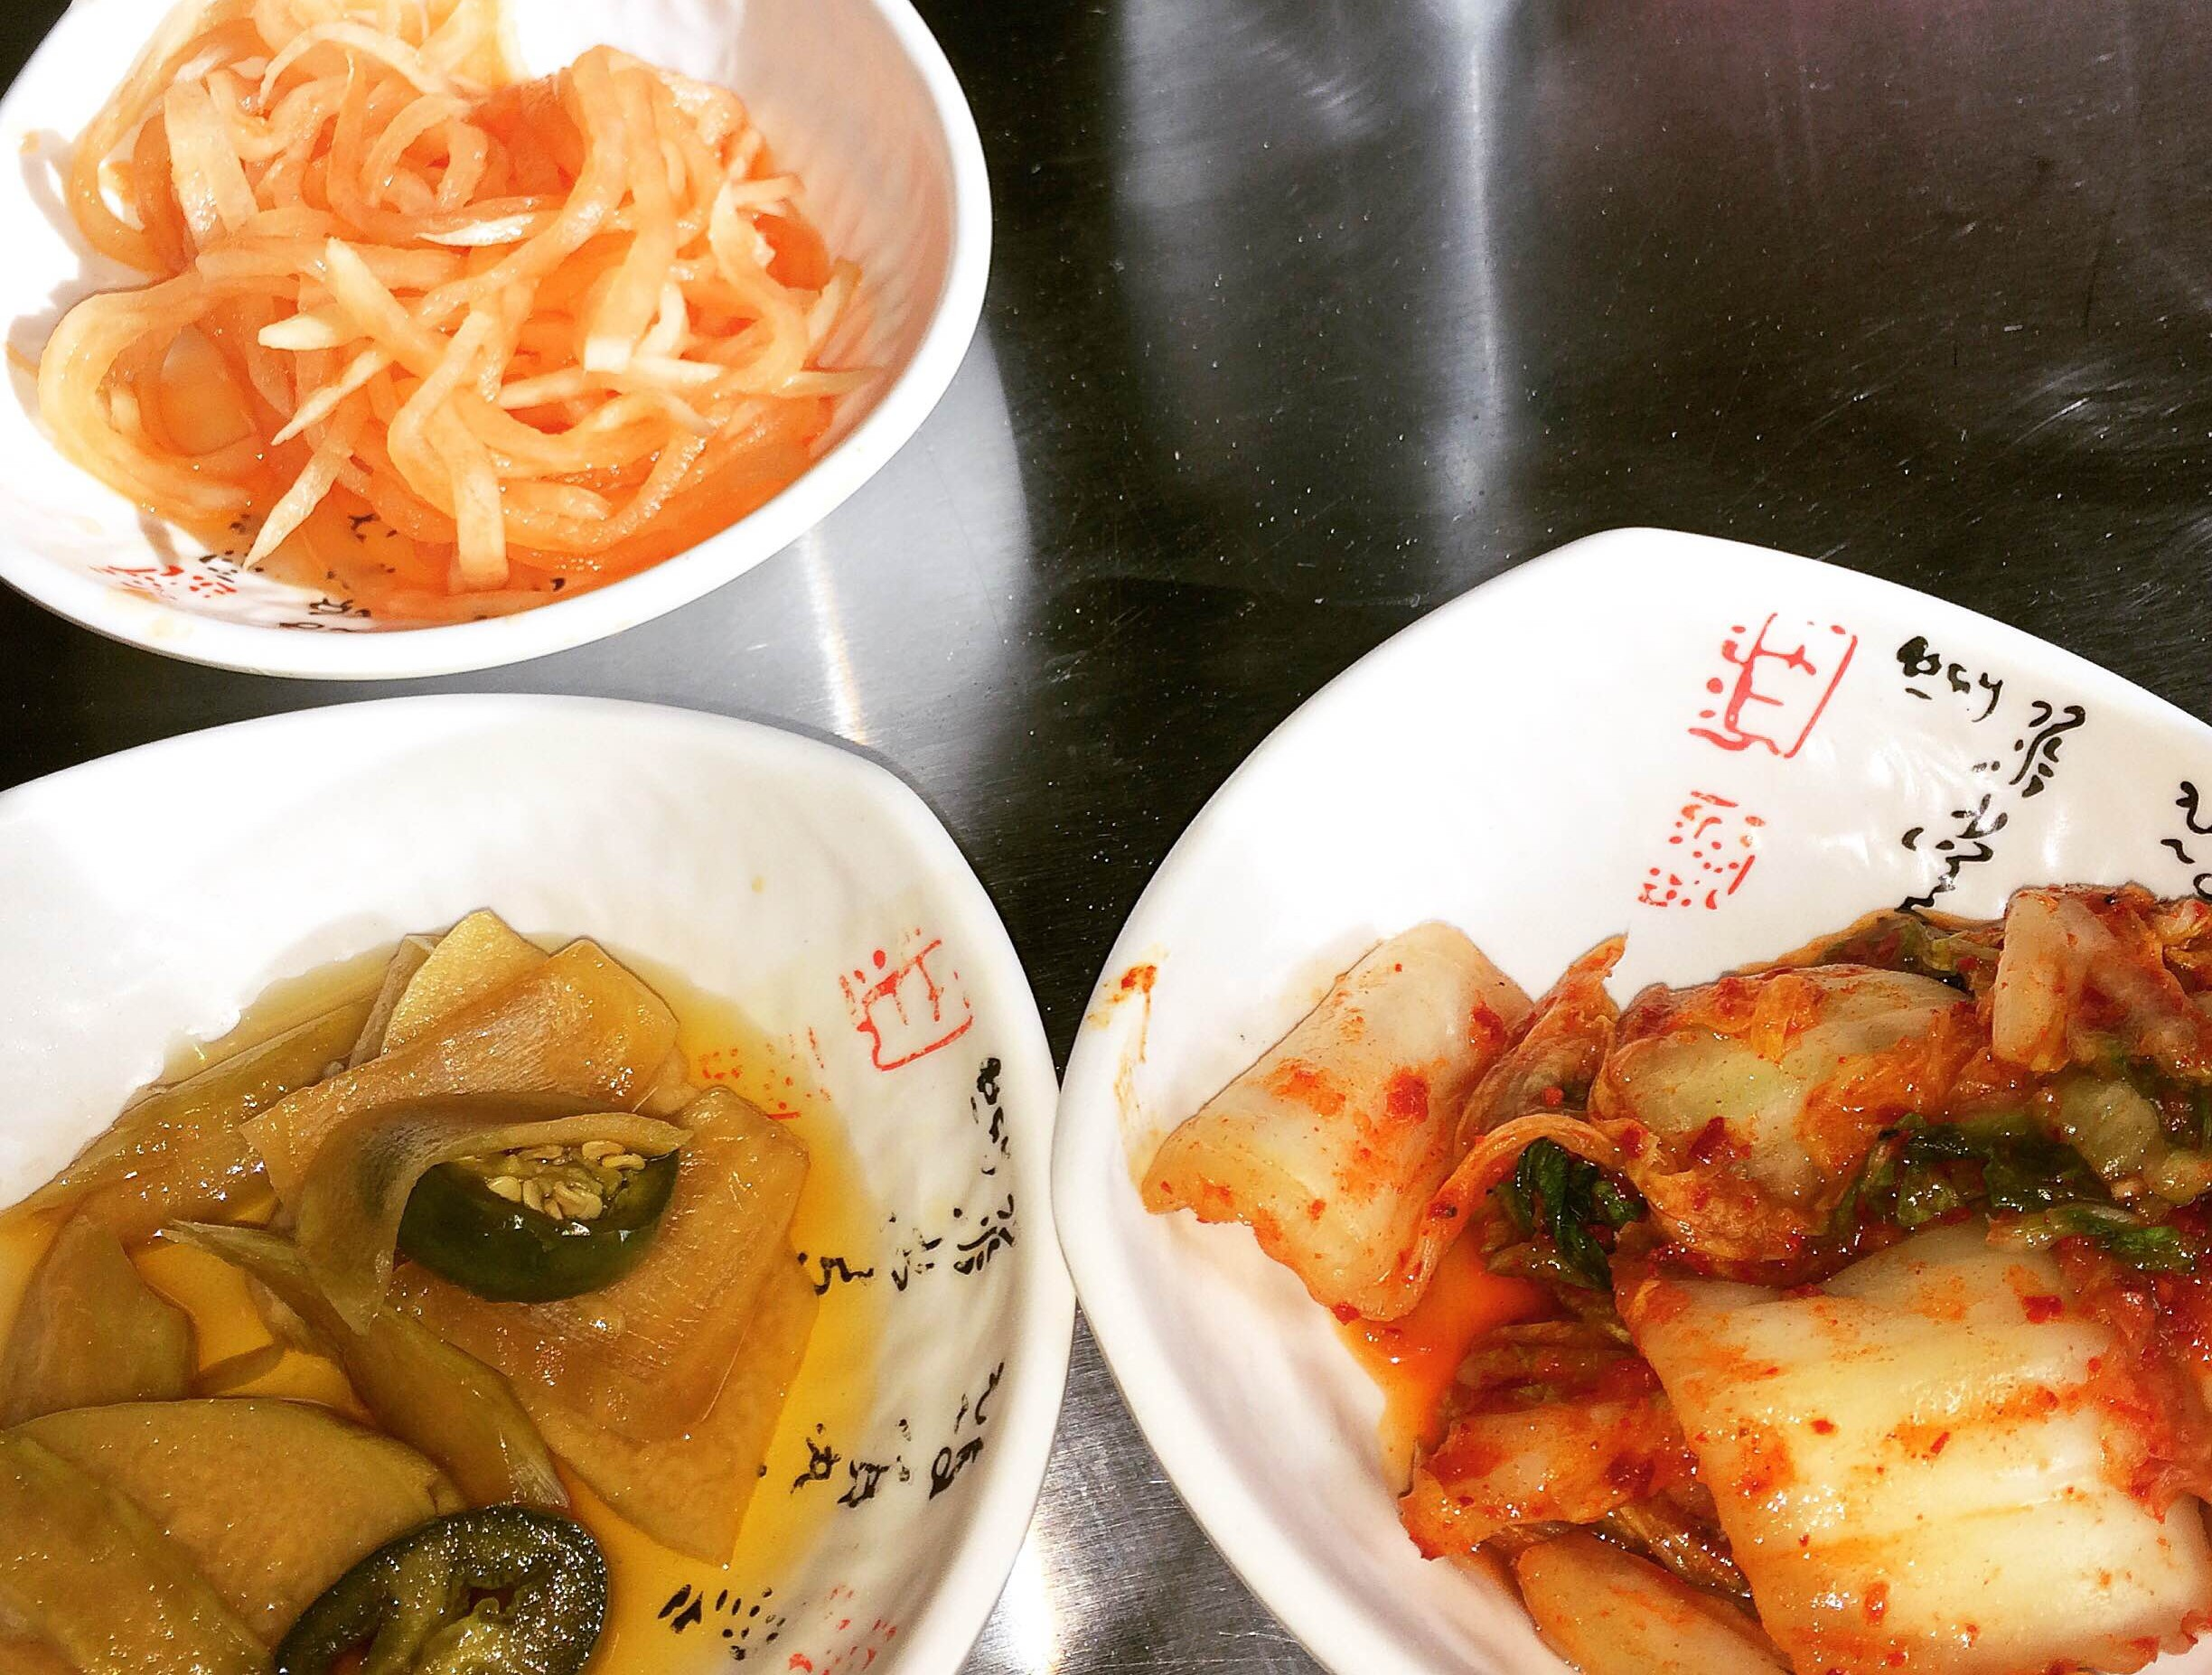 Banchan -- Korean side dishes included kimchi (right) a fermented cabbage and red chili dish. (Photo: Diana Veseth-Nelson/DC on Heels)